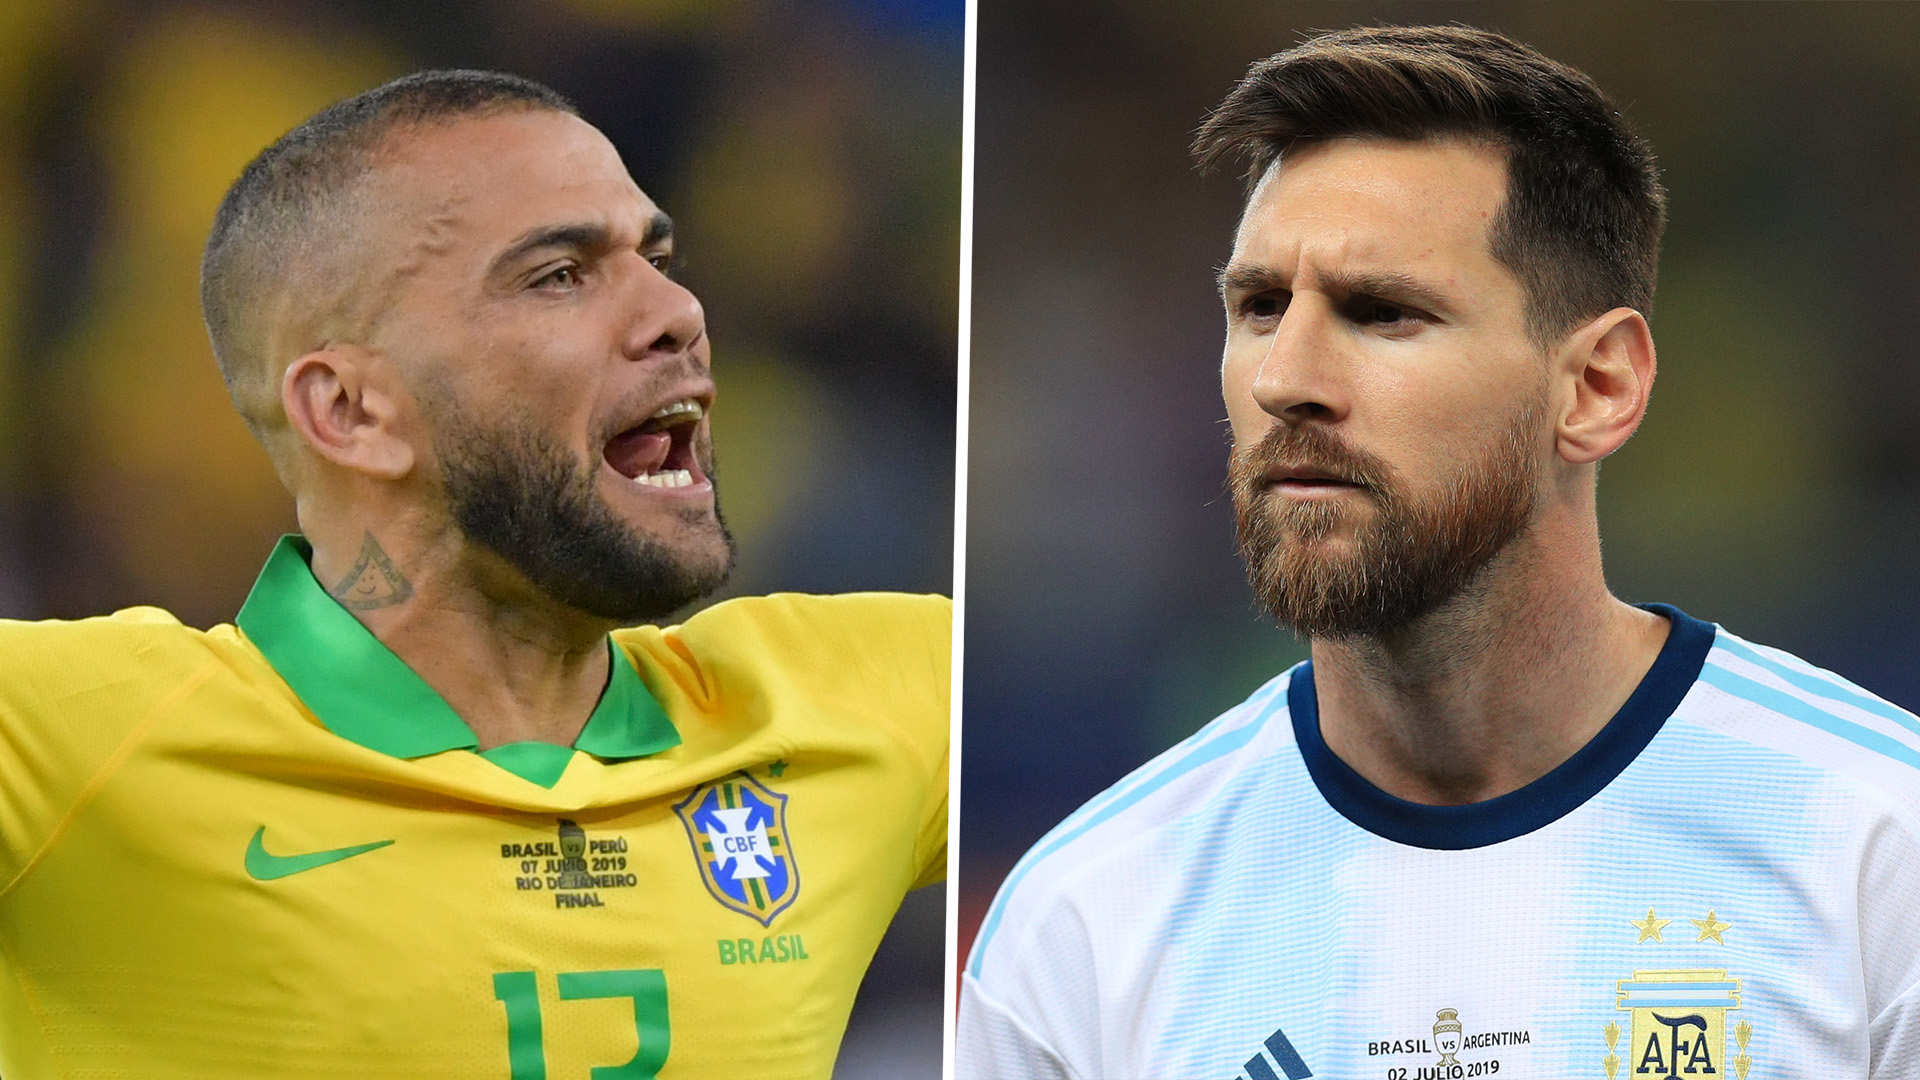 Egyptian team want to sign Dani Alves and talk to Messi